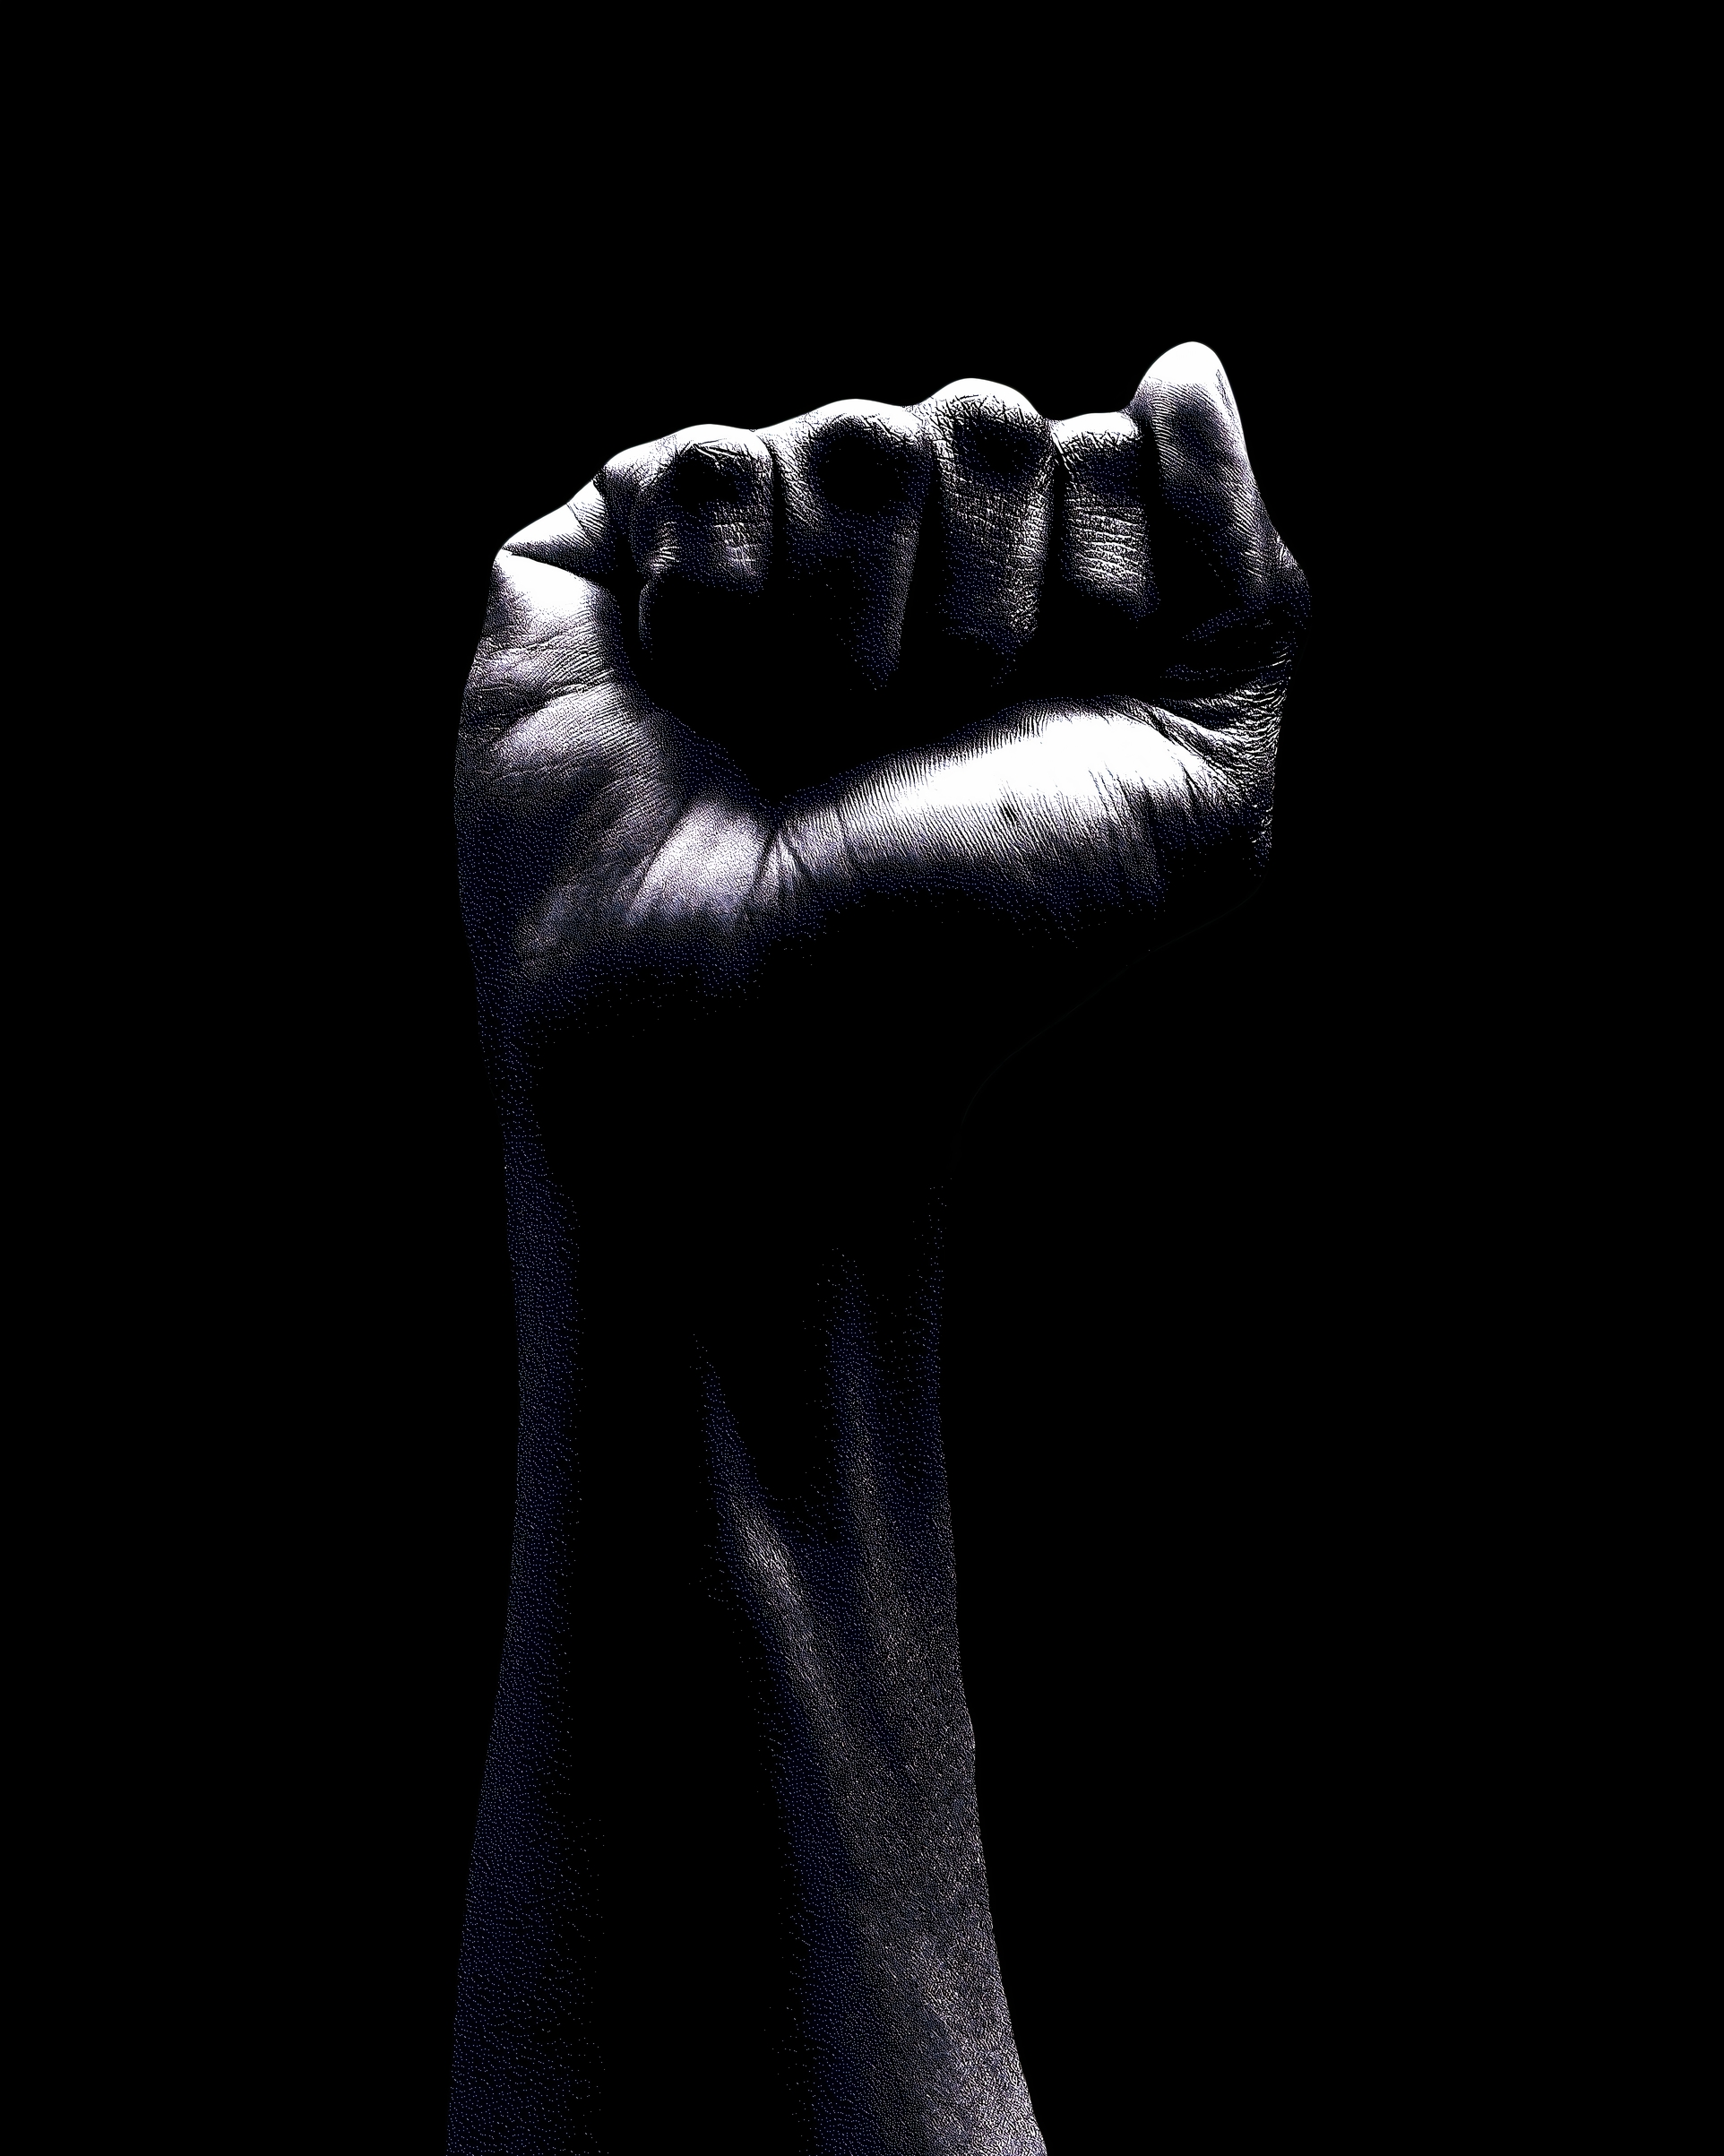 black-fist-national-events-council